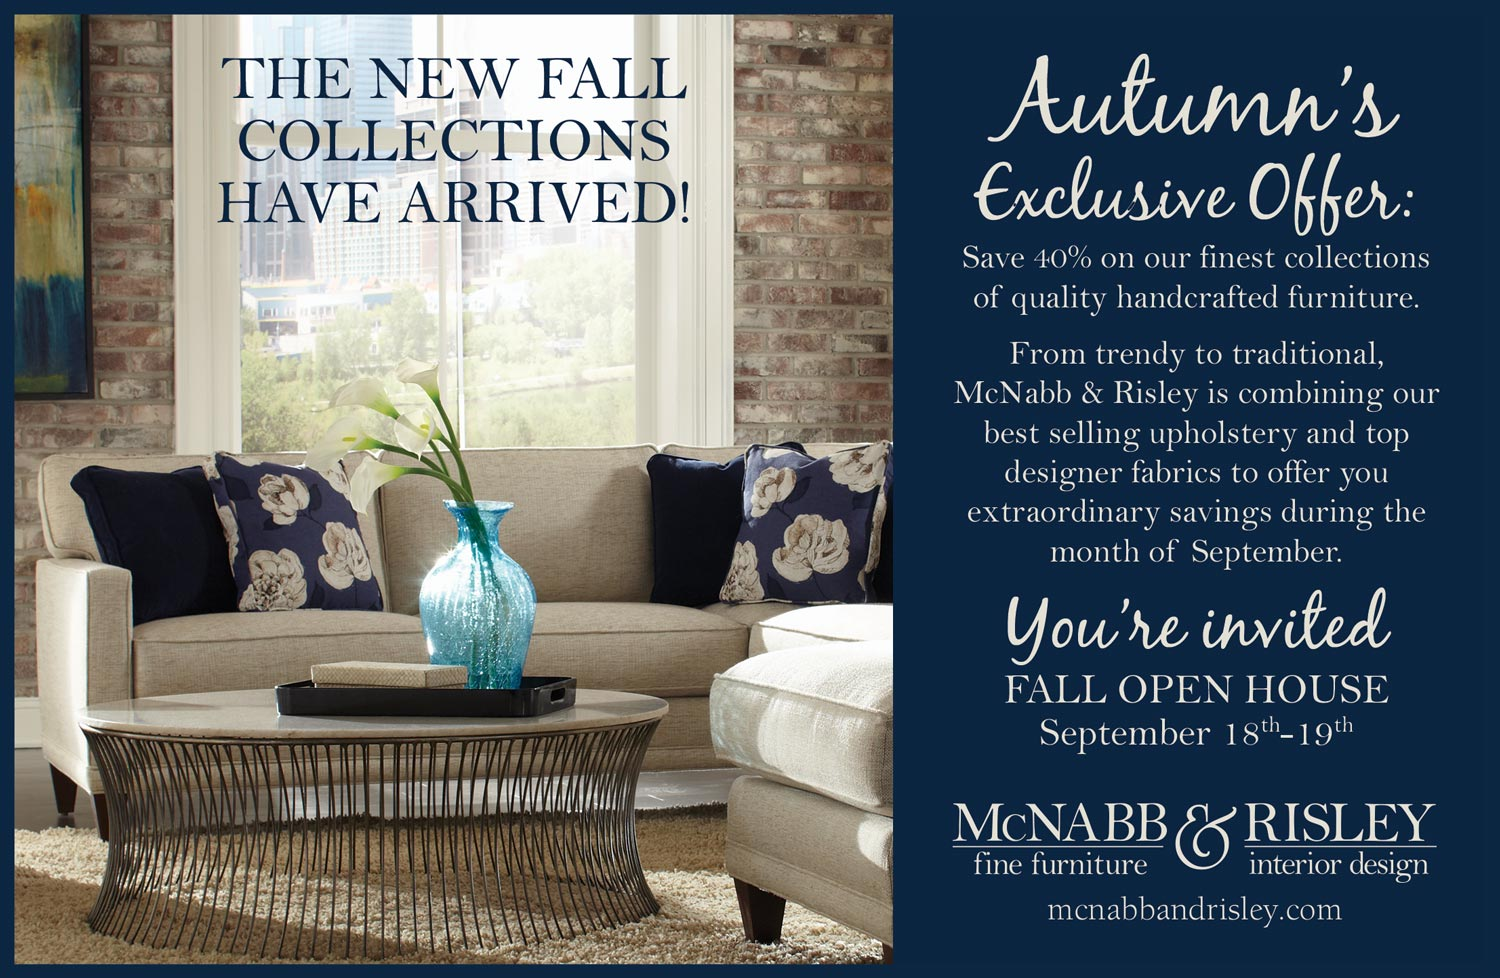 The New Fall Collections Have Arrived! - McNabb & Risley